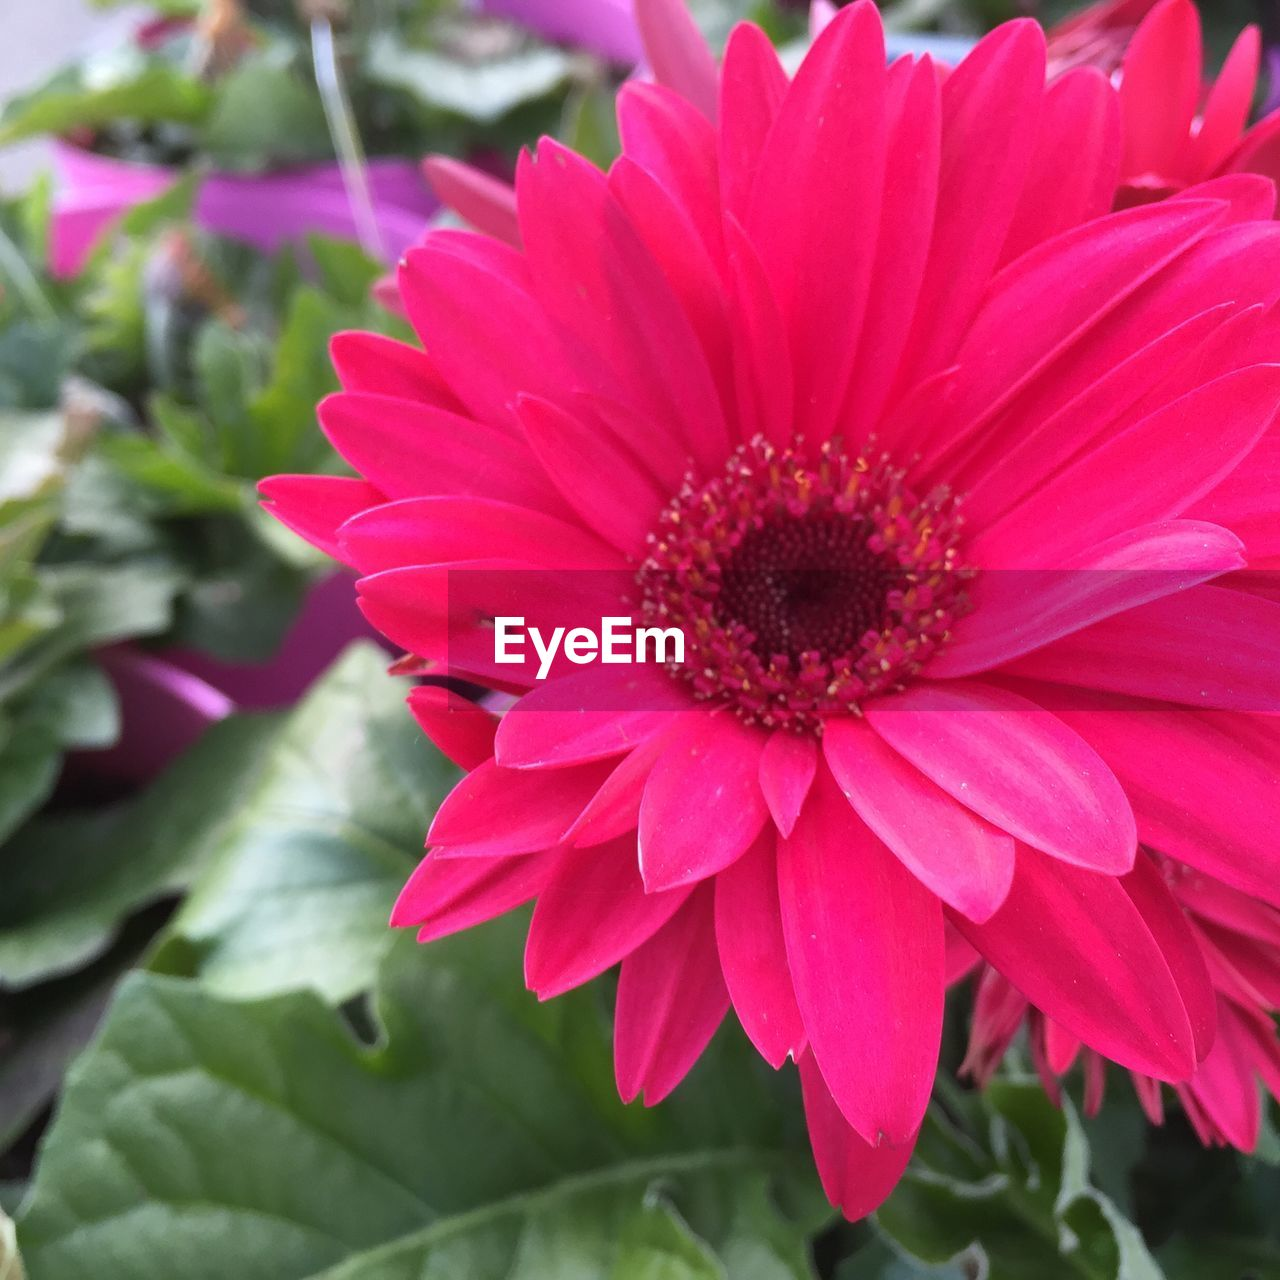 flower, petal, beauty in nature, nature, fragility, flower head, freshness, growth, no people, plant, close-up, day, outdoors, blooming, pink color, red